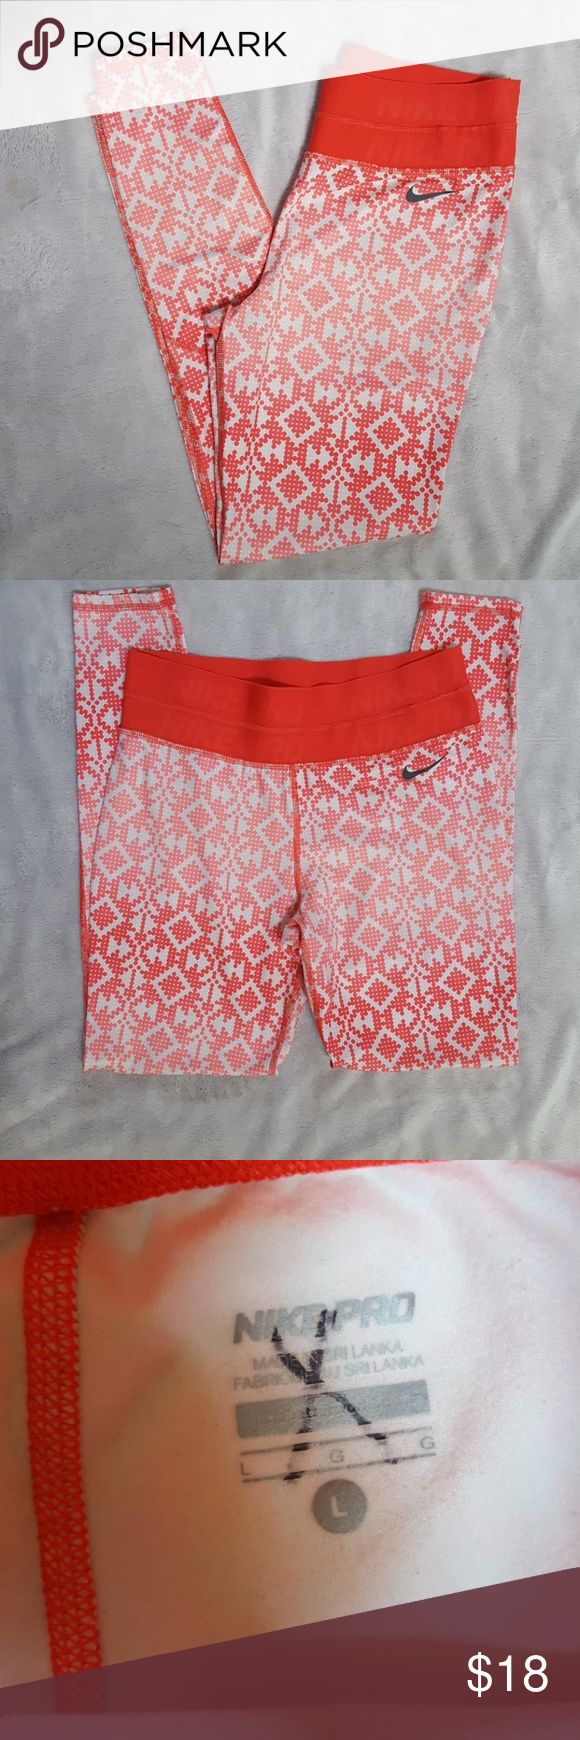 Women's Nike Pro workout pants Super cute Nike workout pants. Great hombre pattern. Excellent condition with one small spot on the back. You really have to look for it. Nike Pants